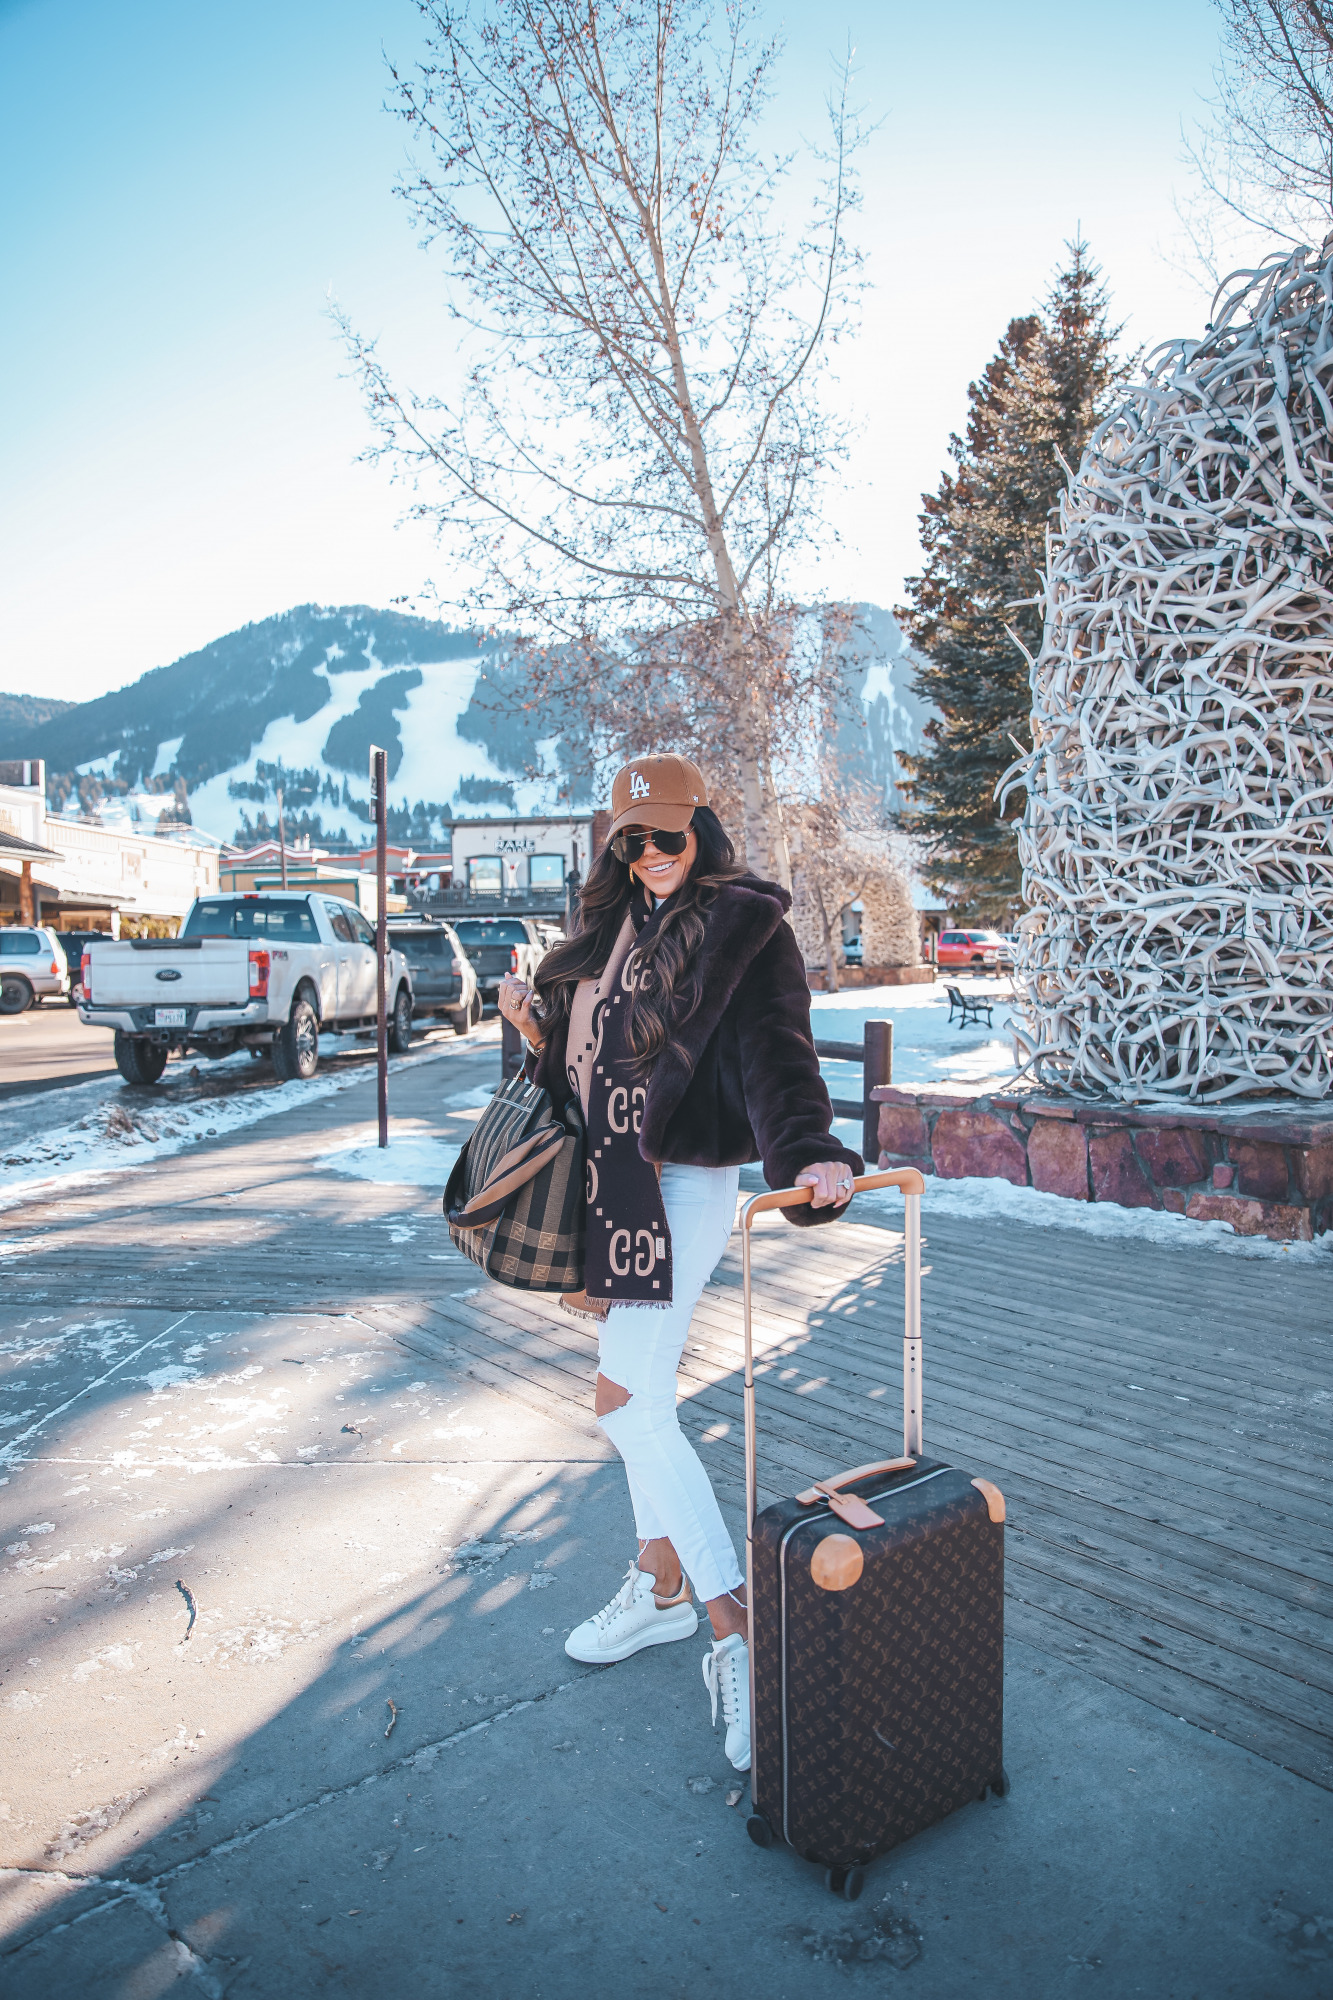 casual travel outfit idea winter 2021, airport fashion outfit idea, cute airport outfit idea winter, fendi tote | Winter Fashion by popular US fashion blog, The Sweetest Thing: image of Emily Gemma standing by the antler arch in Jackson Hole, WY and wearing a Free People top, BB Dakota faux fur jacket, distressed white denim jeans, Gucci scarf, '47 brand cap, Le Specs sunglasses, and standing next to a Louis Vuitton rolling suitcase and holding a Fendi tote bag.